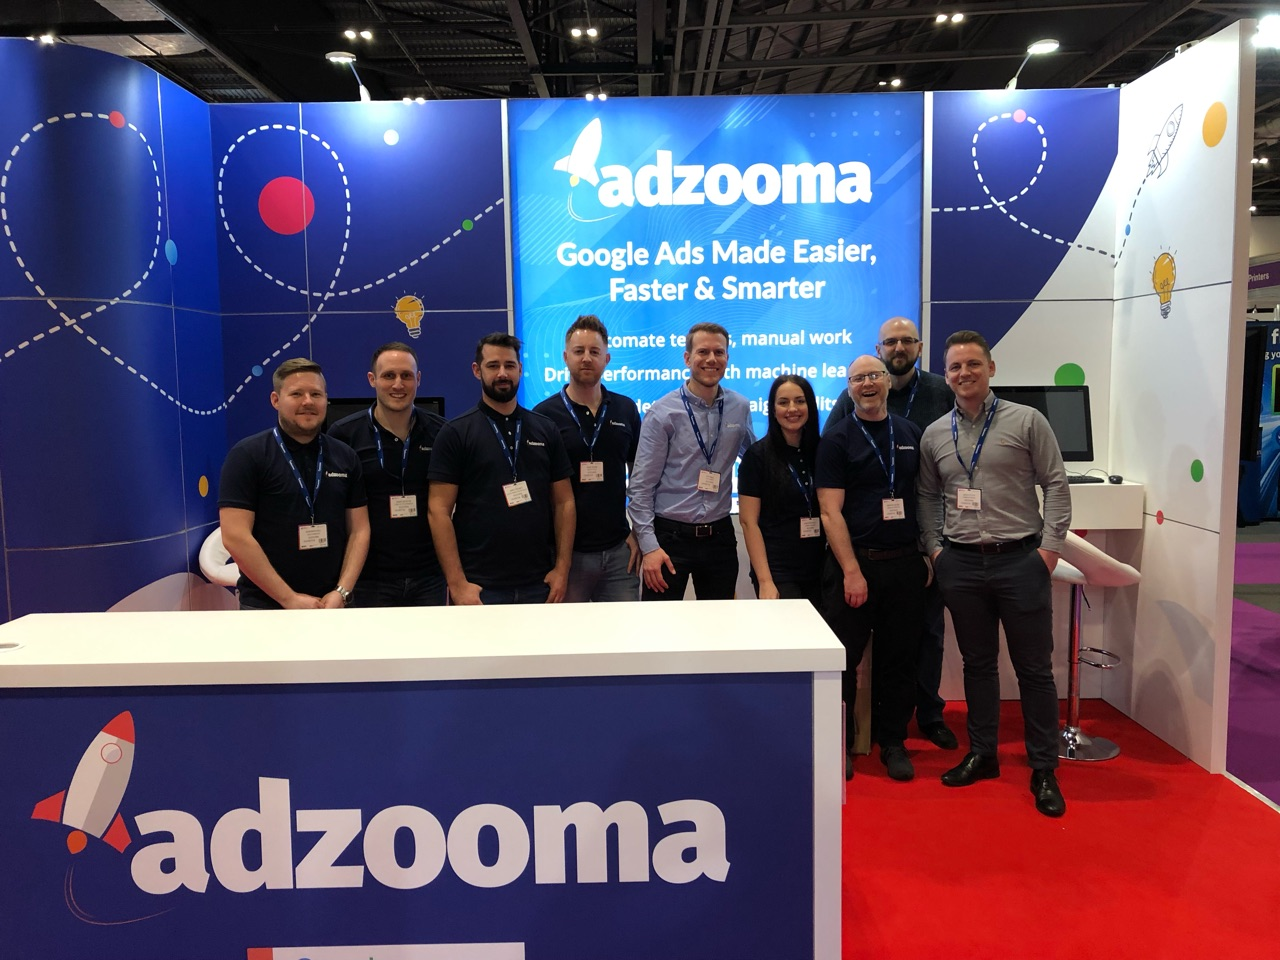 Image of the Adzooma stand and staff at the event